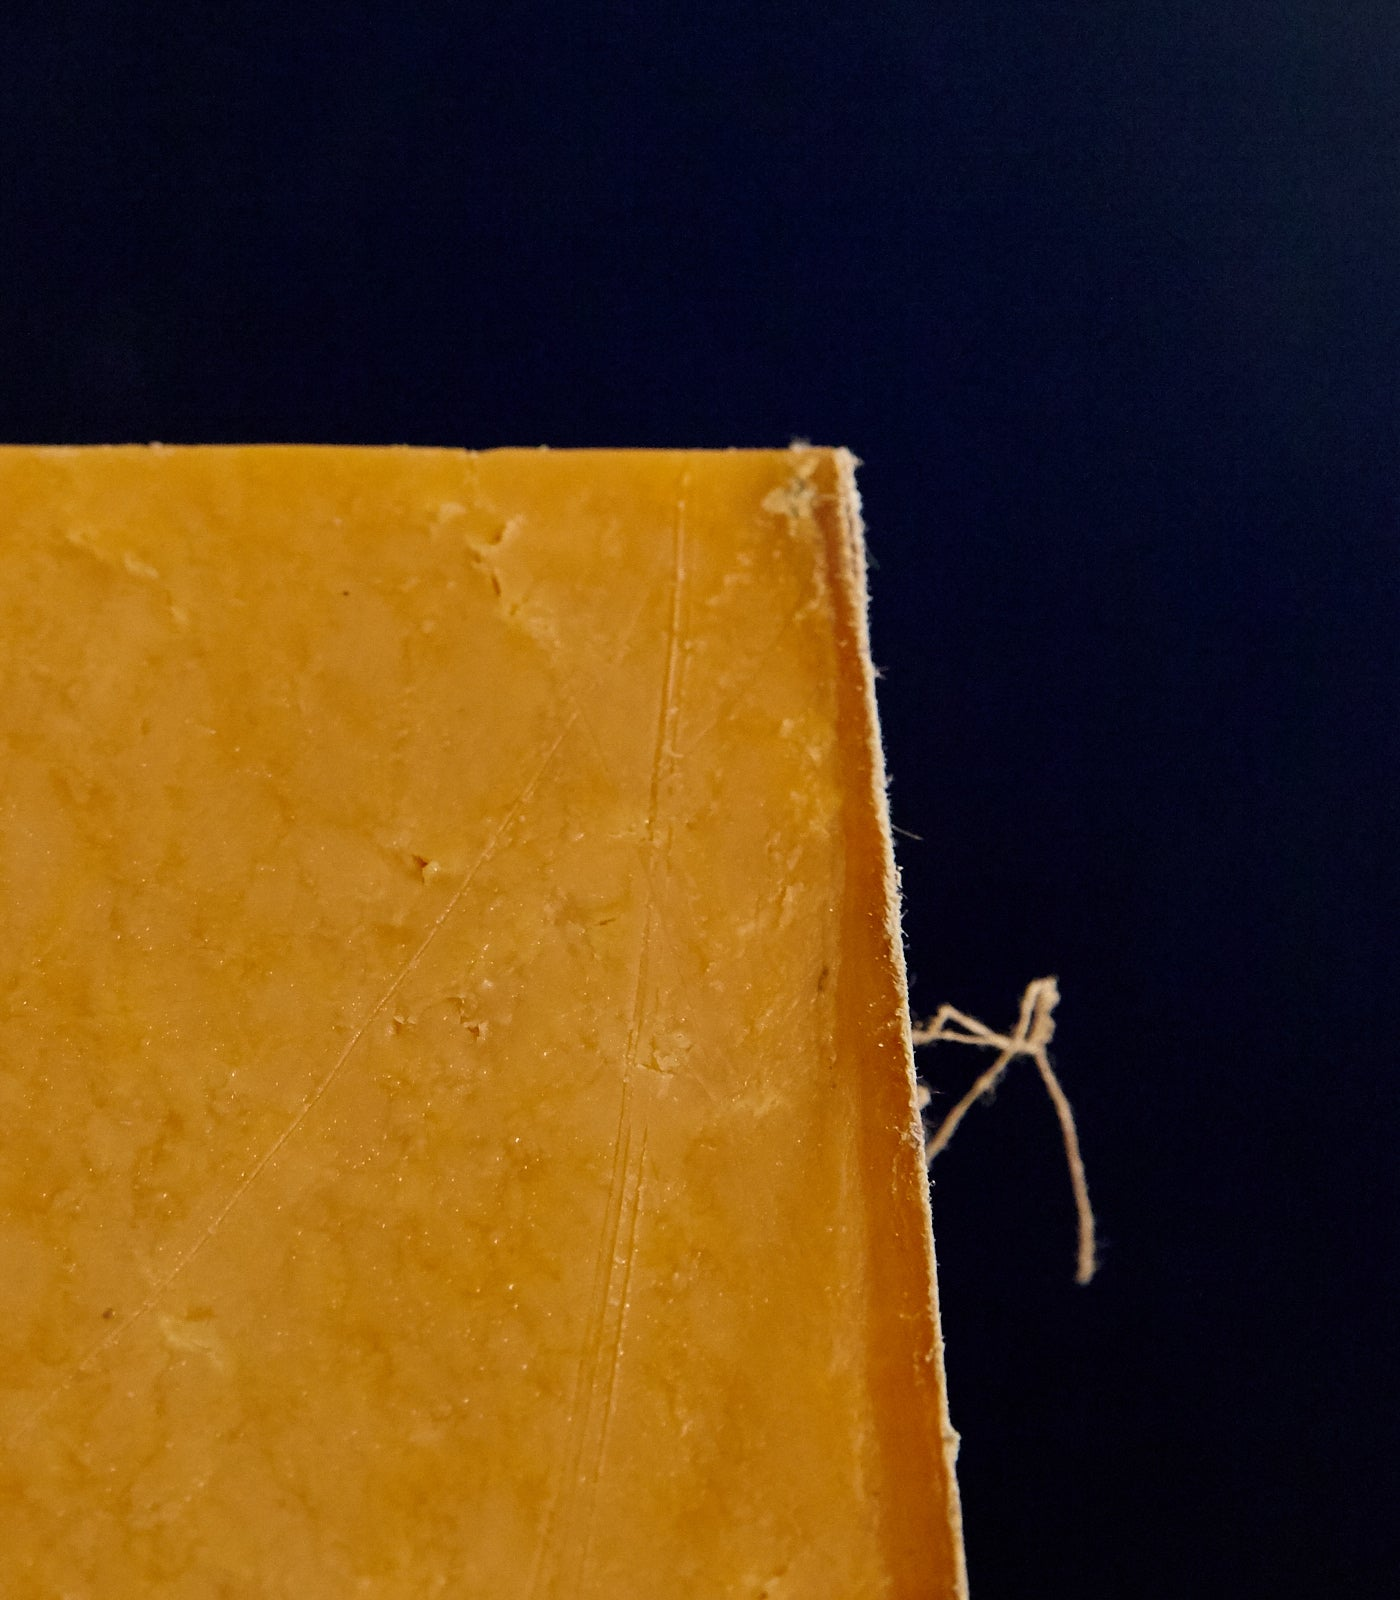 Close up of a cut piece of clothbound Mature Sparkenhoe Red Leicester cheese showing the firm, orange coloured paste